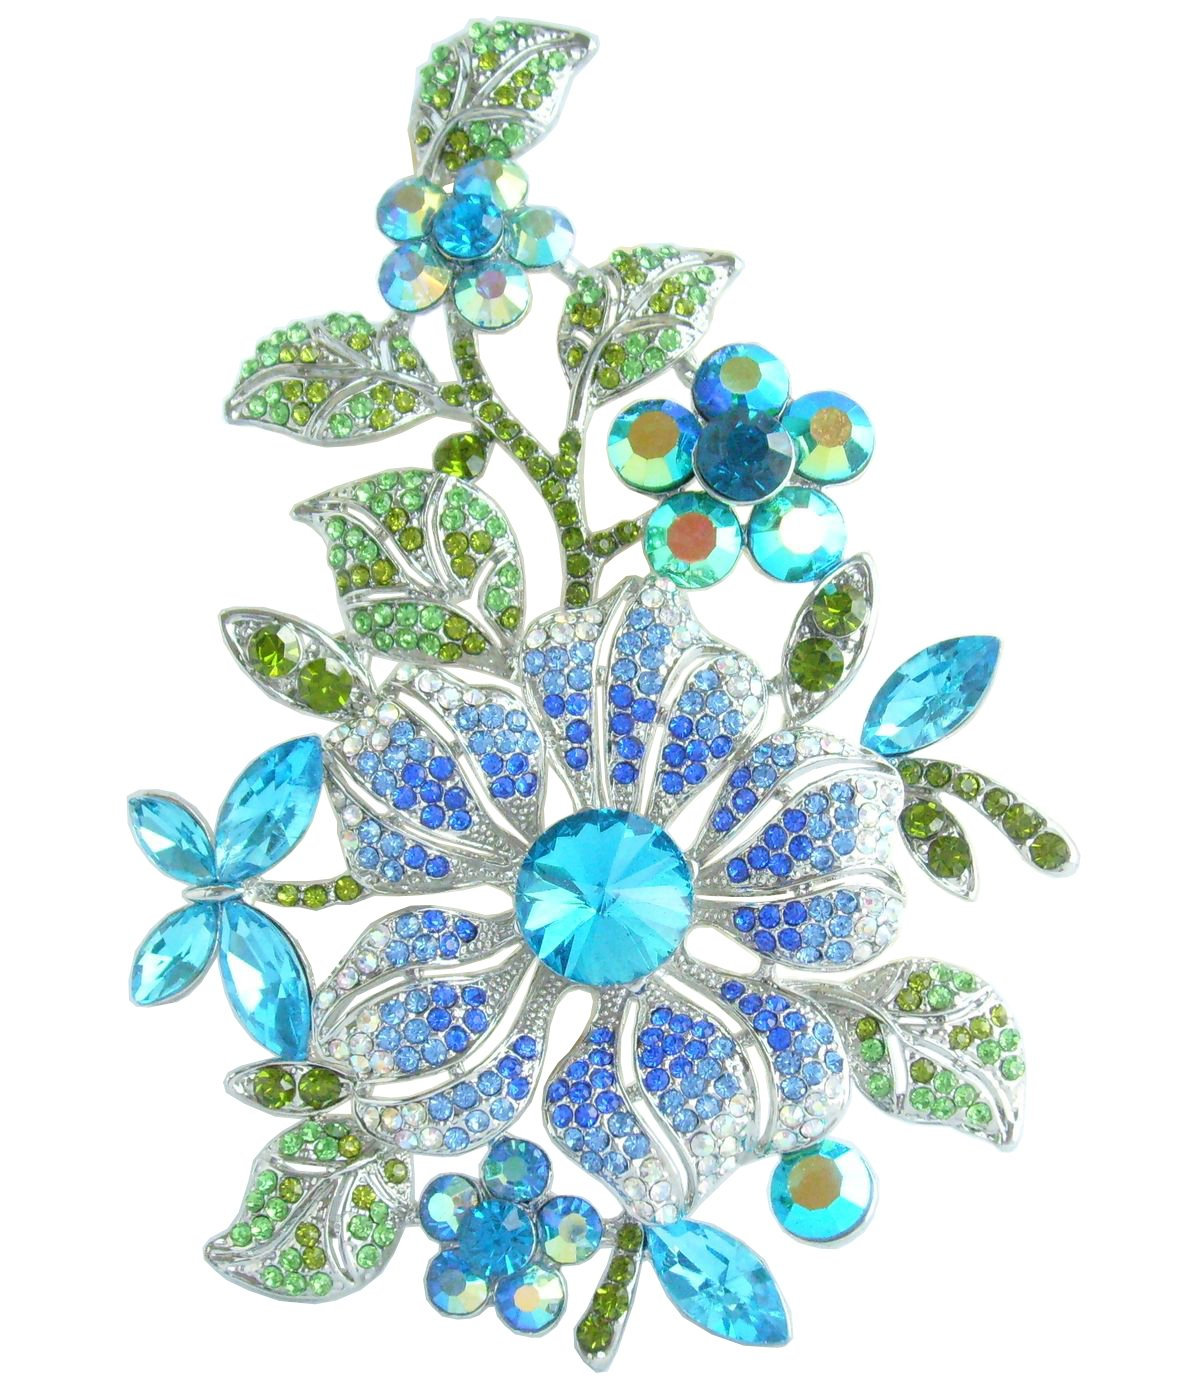 Sindary Beautiful 4.72'' Austrian Crystal Orchid Flower Brooch Pin Pendant BZ4712 (Silver-Tone Blue)